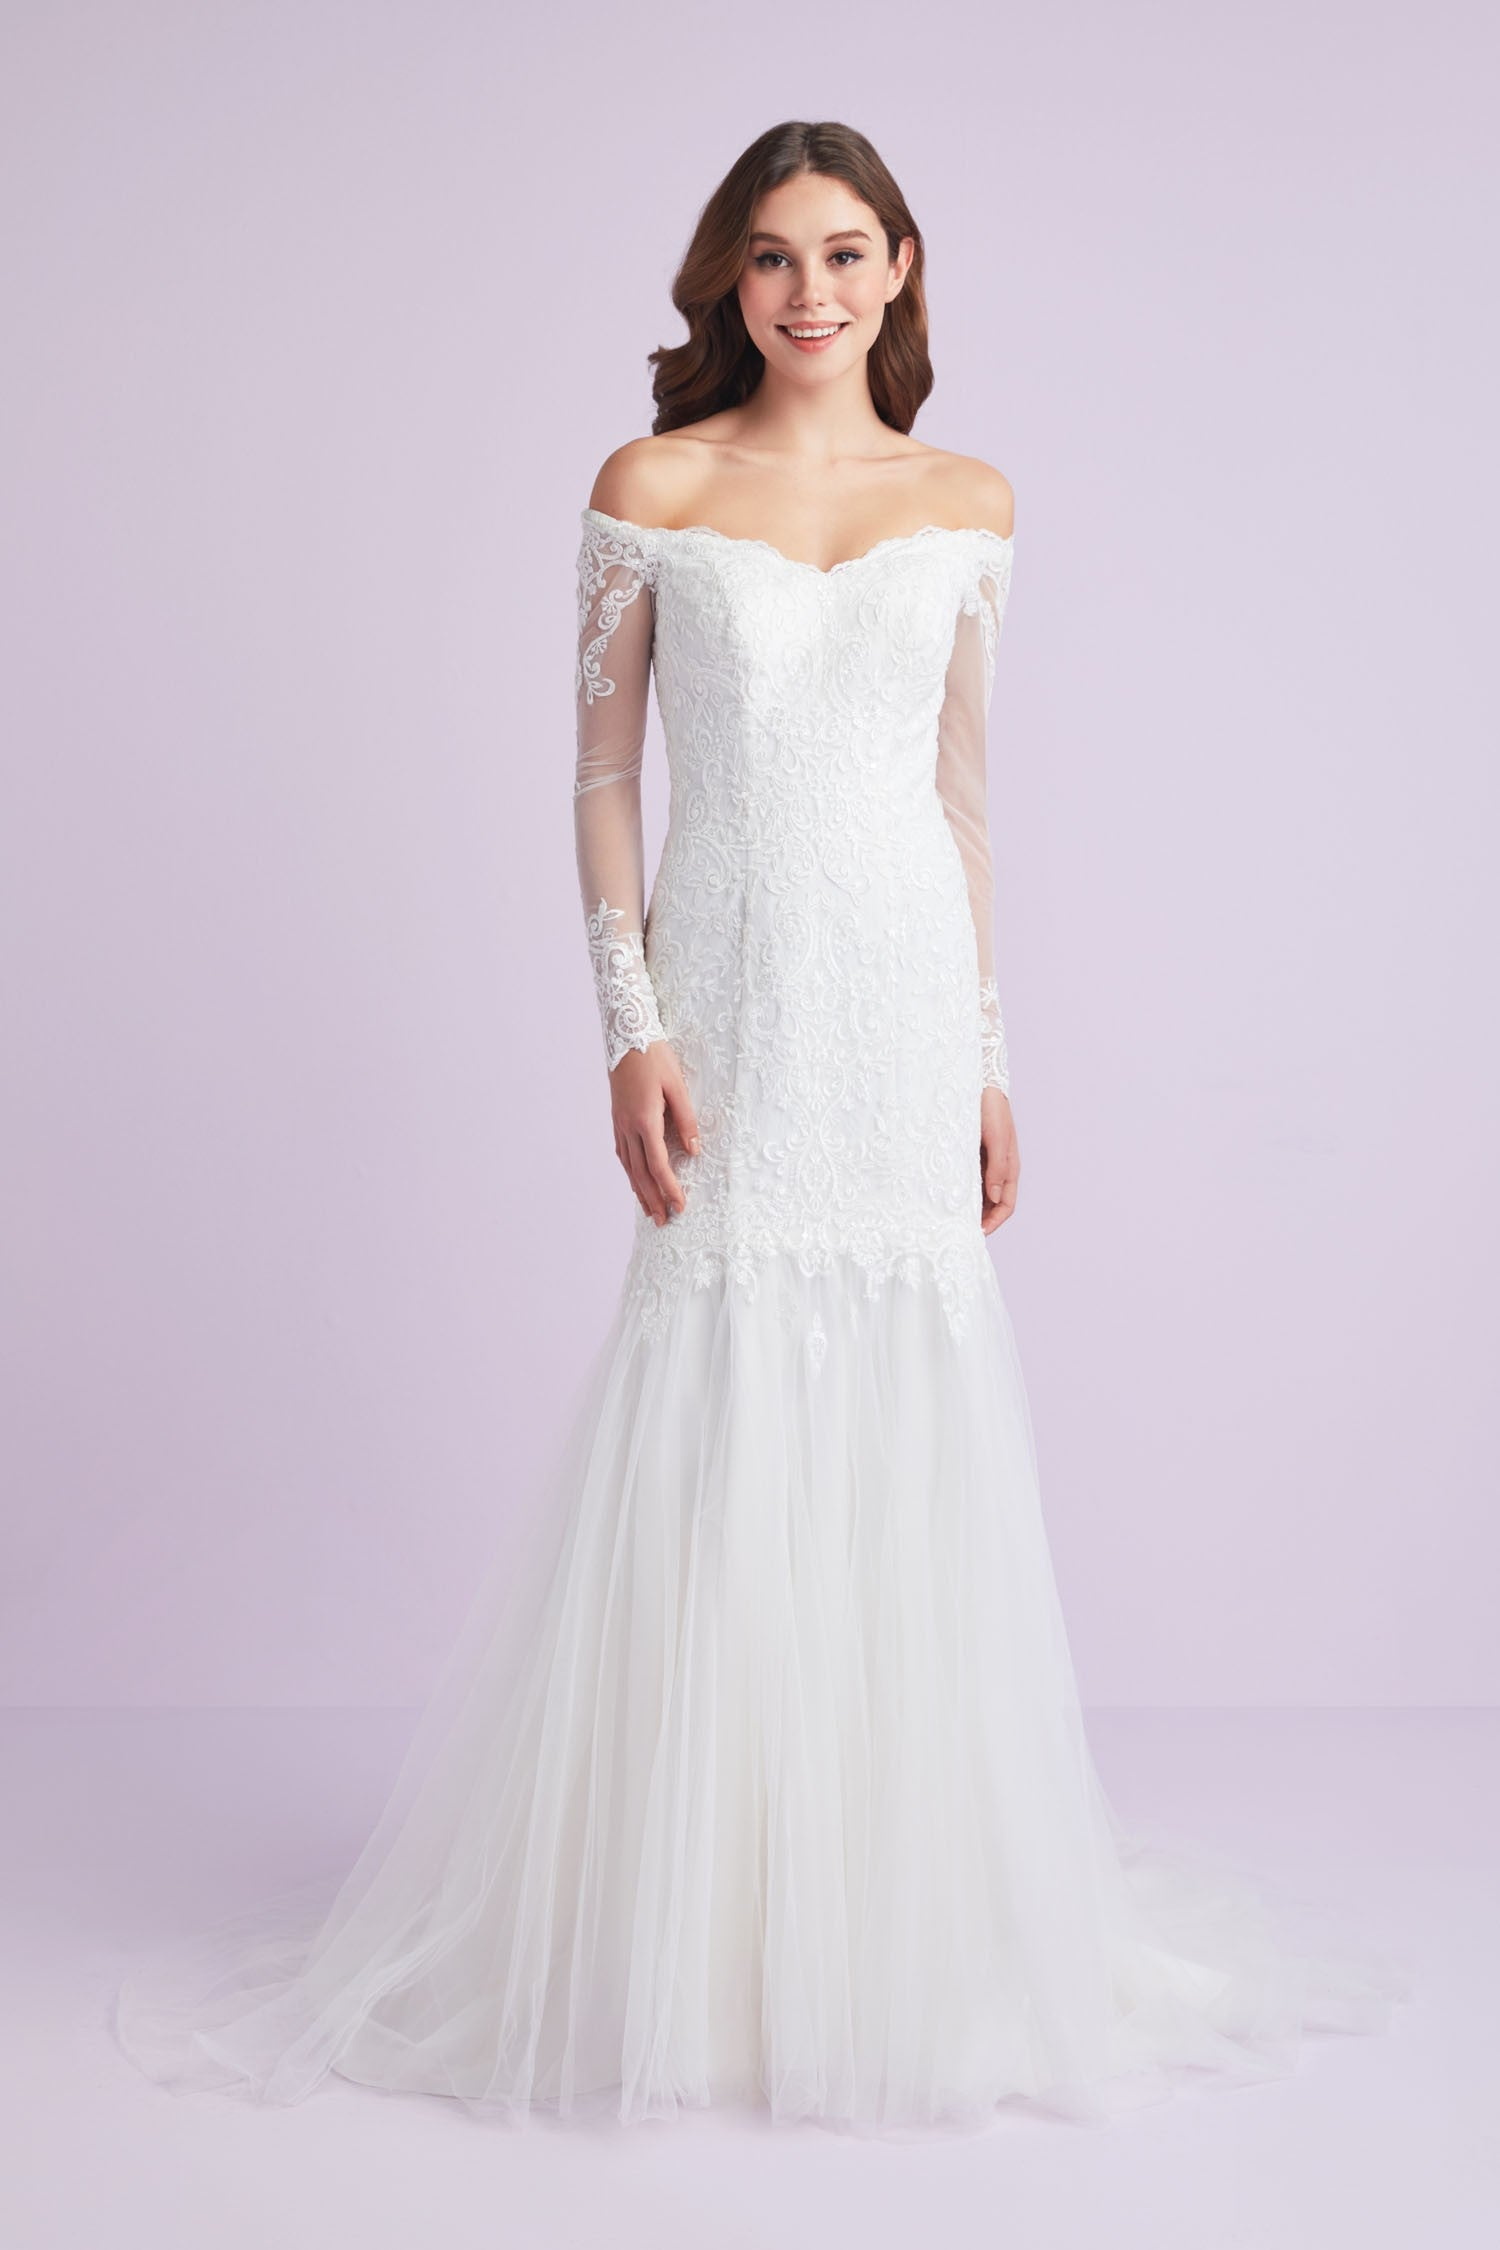 41699bbc5745 Affordable Wedding Dresses Online | Oleg Cassini Store